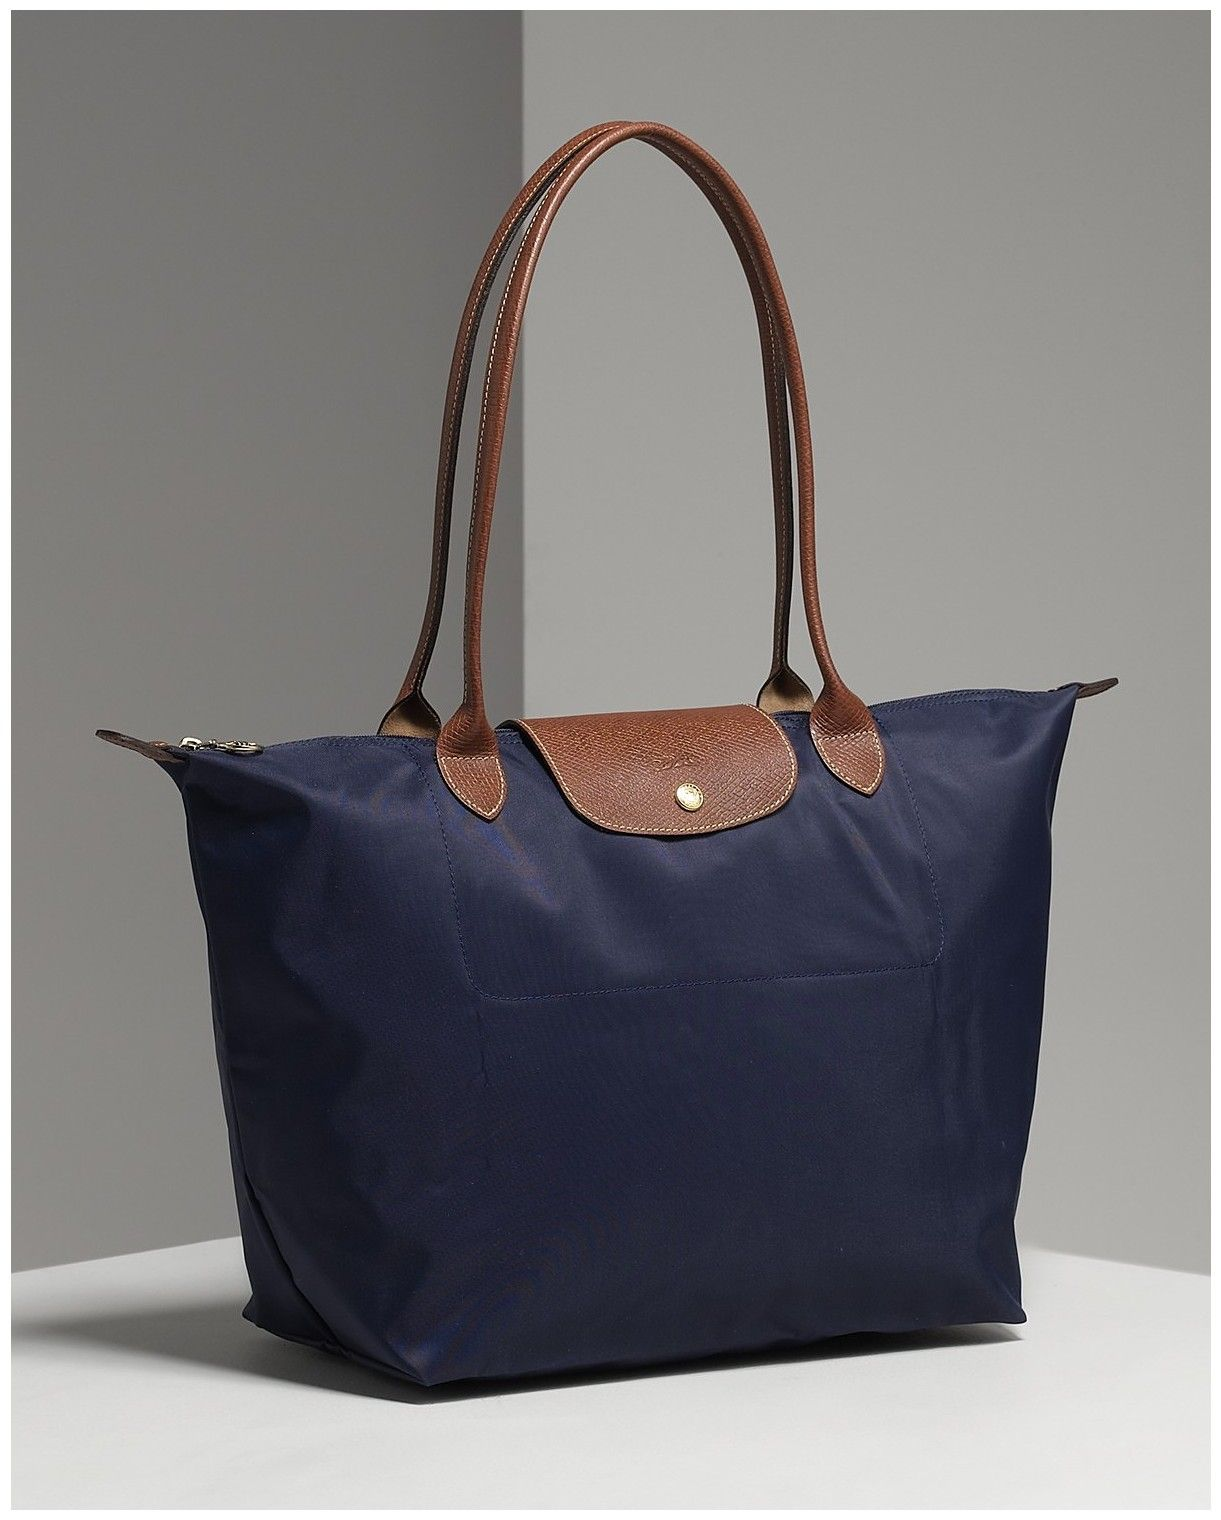 longchamp#@$29 on in 2019 | Fashion handbags, Fashion